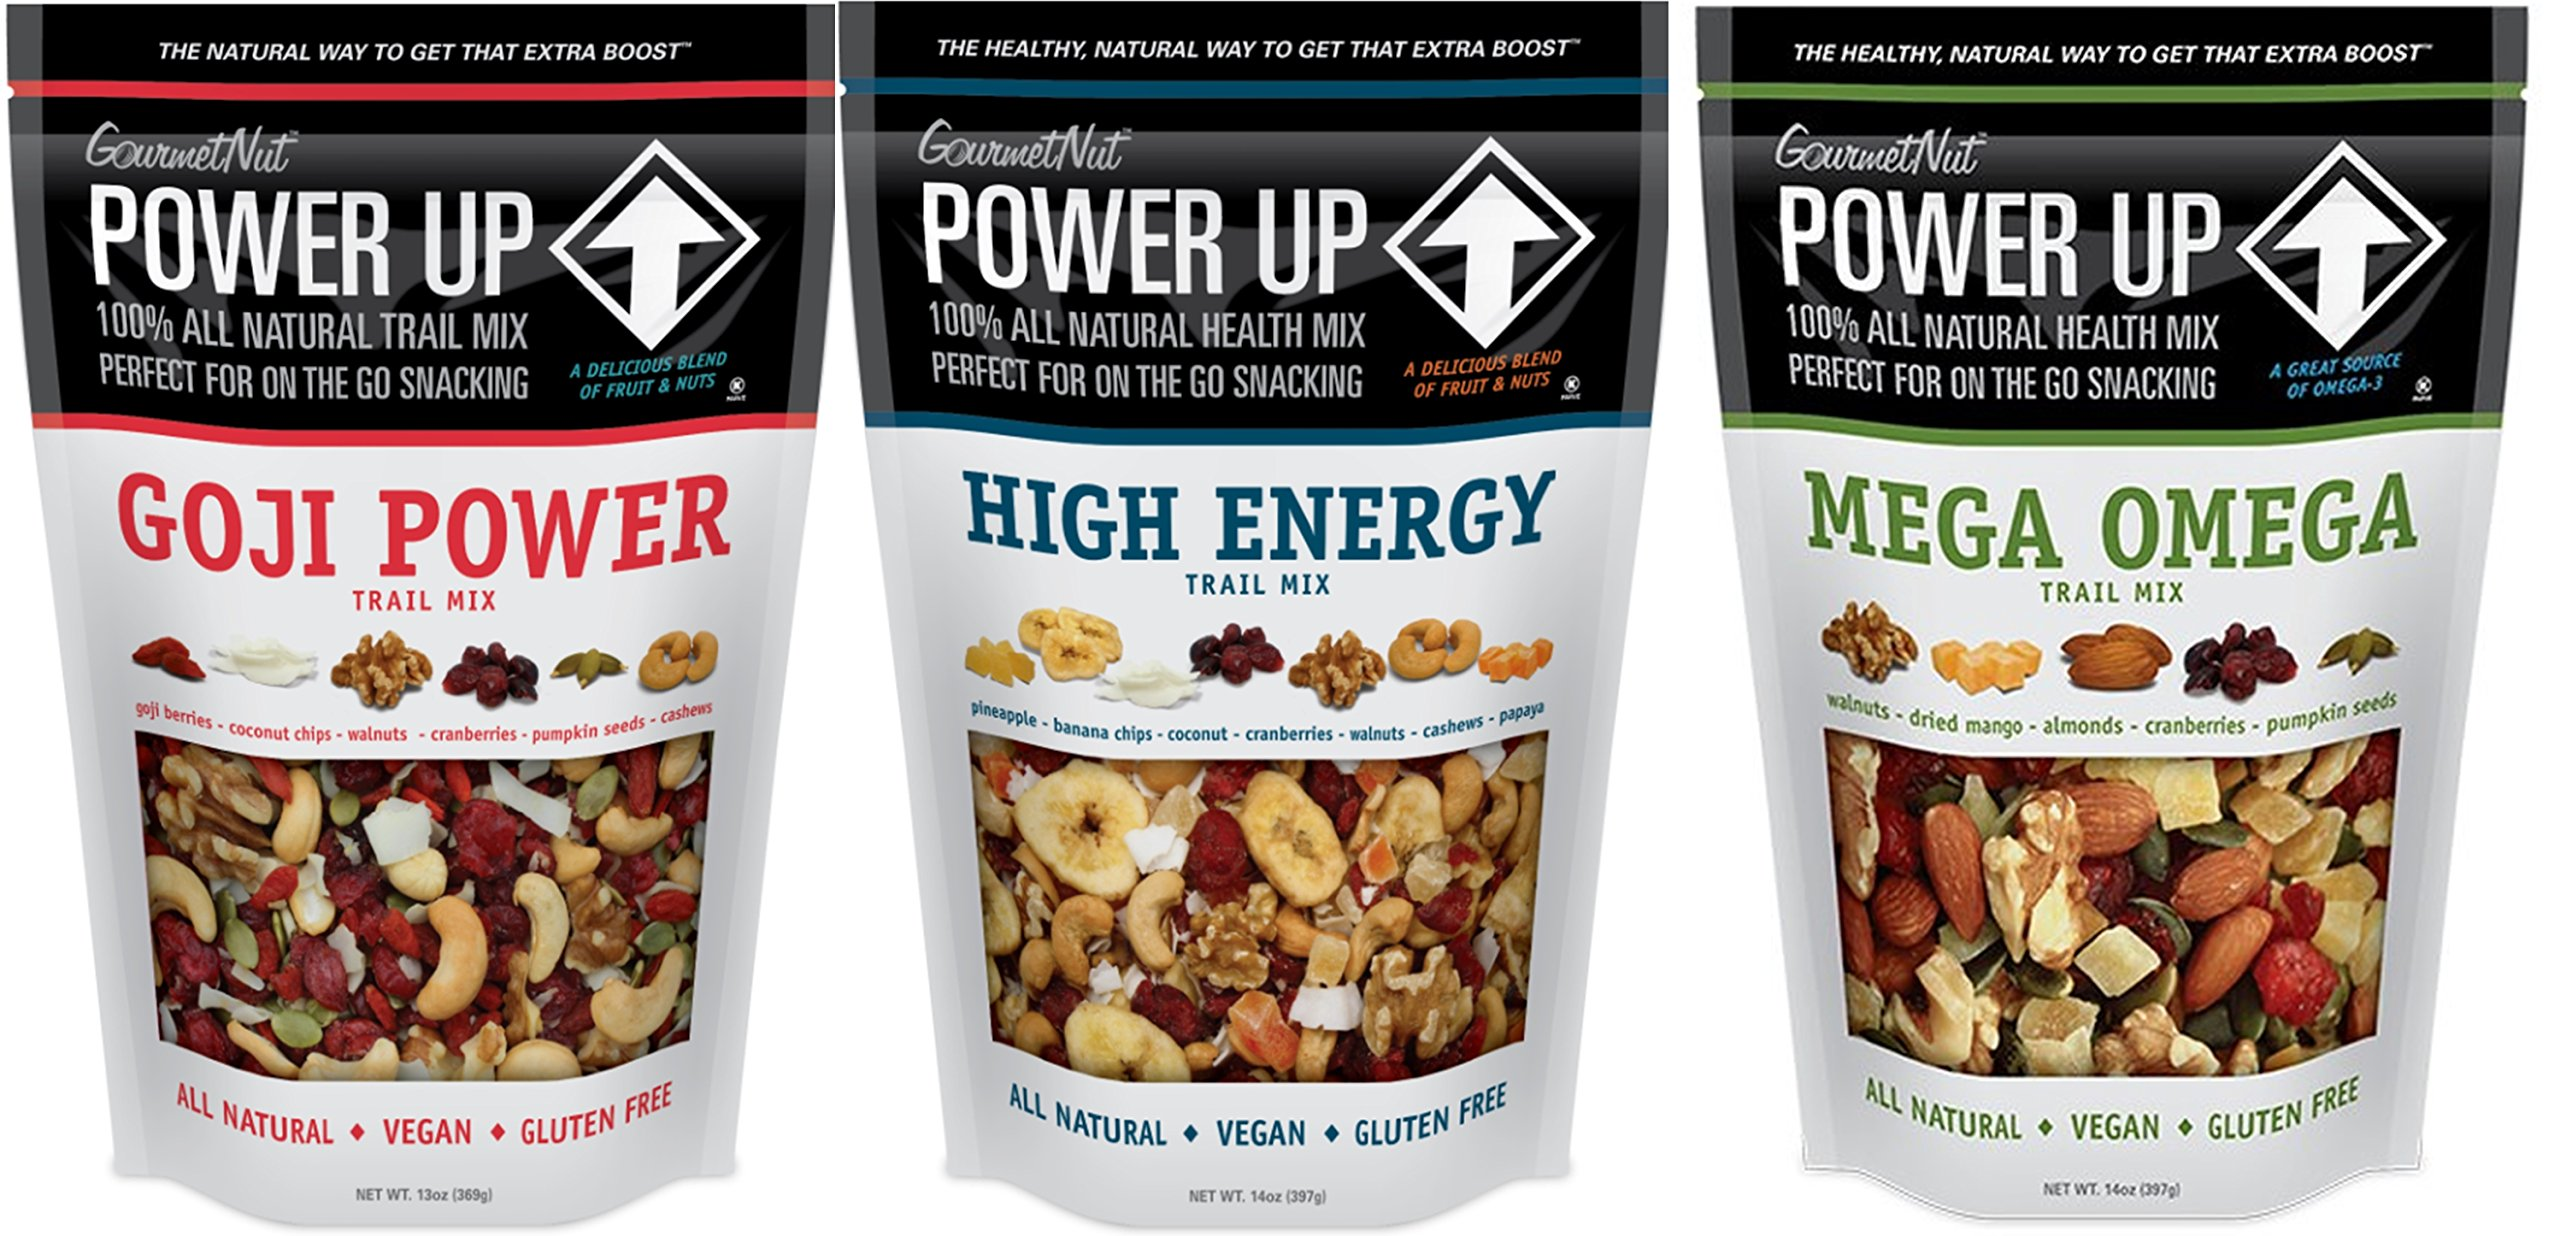 Natural Healthy Snacks Nuts Cashews Trial Mix Mega Omega Goji Power High Energy Gluten Free Vegan by GourmetNut by Gourmet Nut